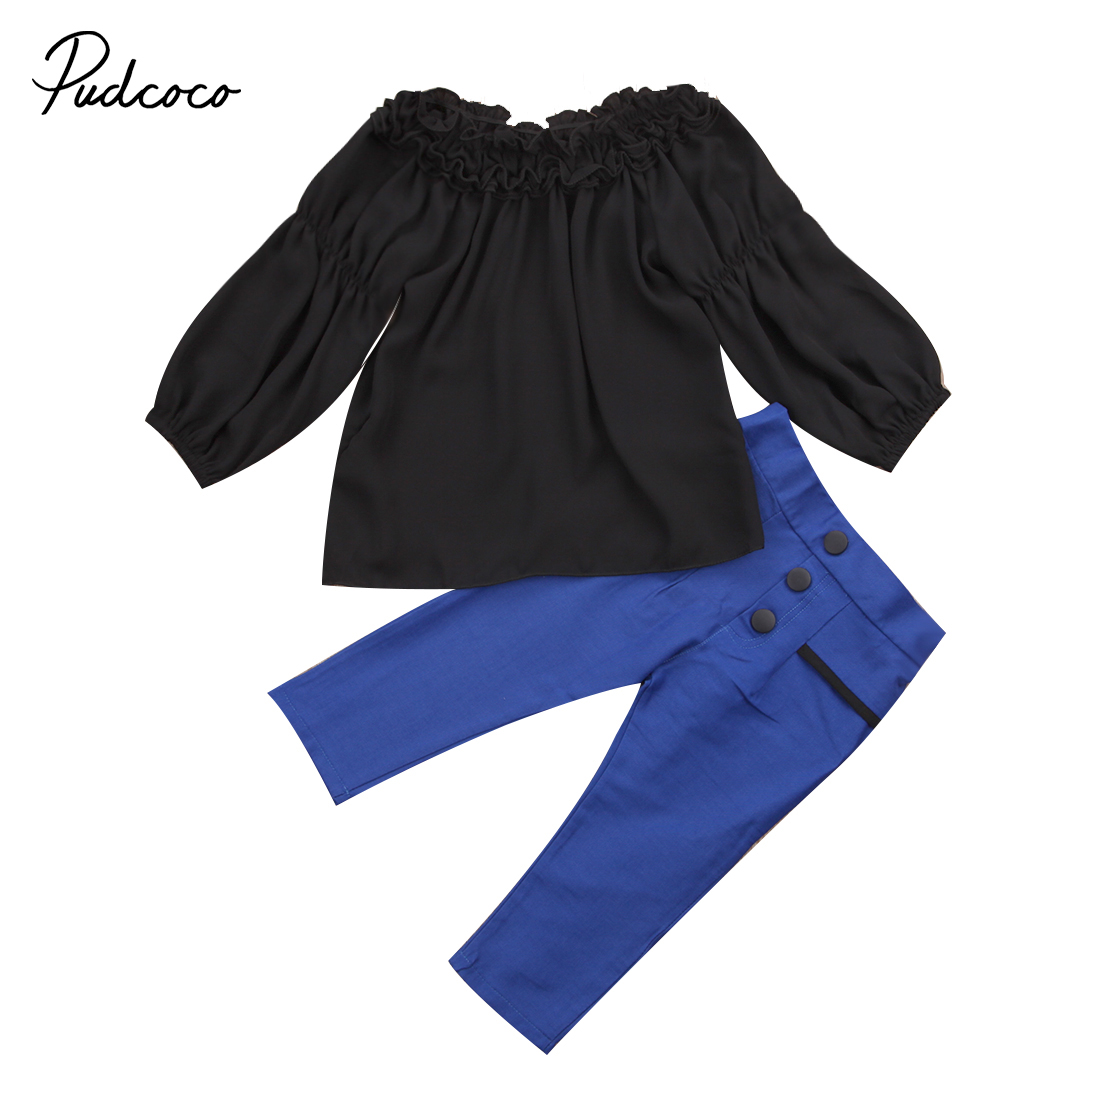 Kids Baby Girl Outfit Set Off Shoulder Long Sleeve Shirt Tops+Blue High Waist Pencil Pants 2pcs Outfits Clothes Sets